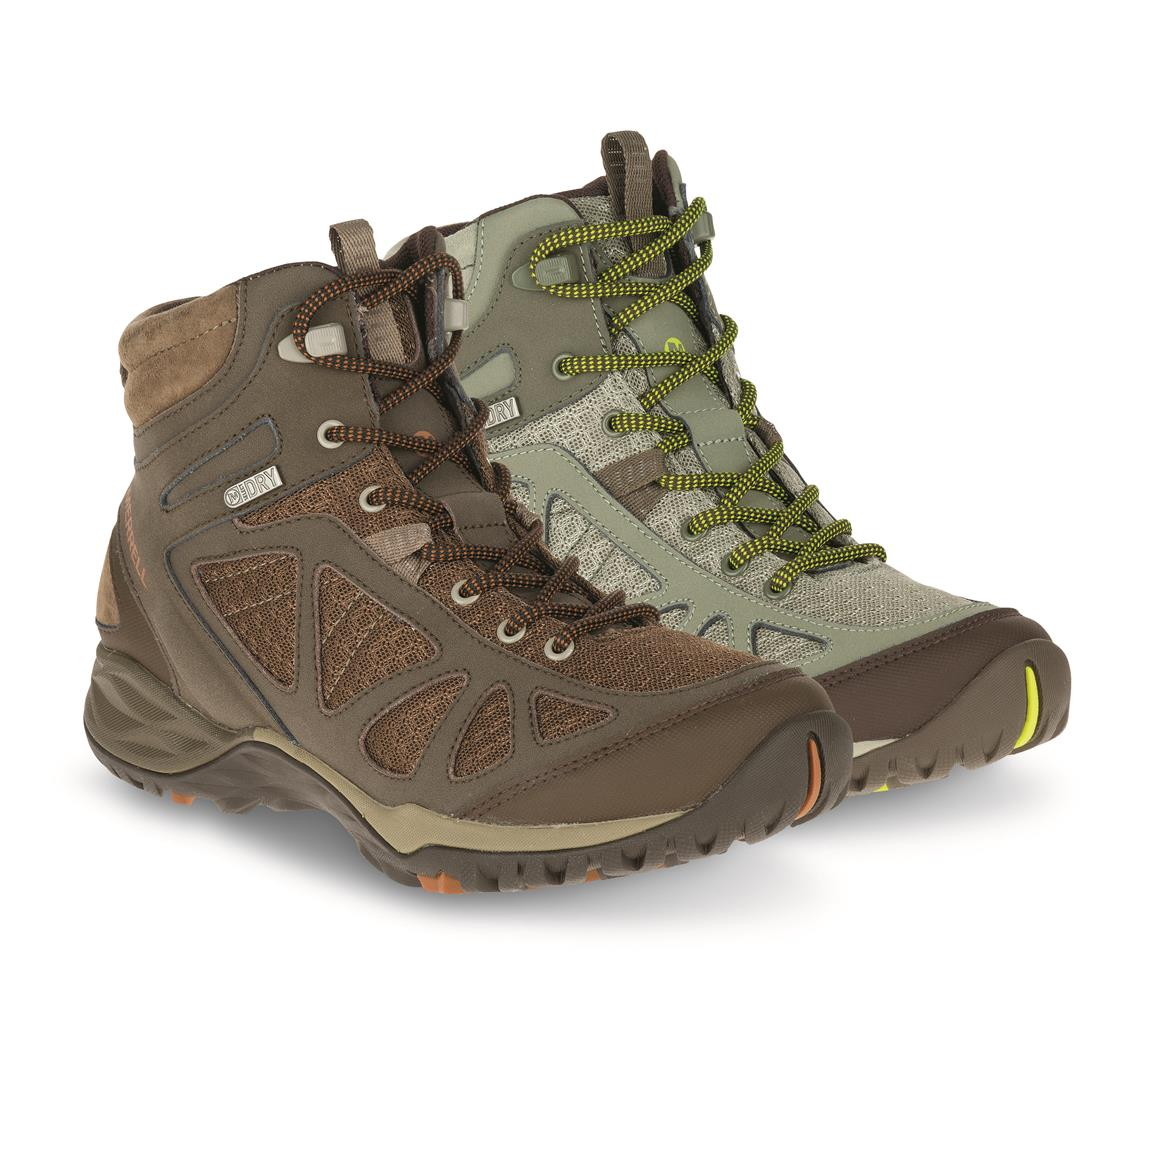 Merrell Women's Siren Sport Q2 Waterproof Hiking Shoes